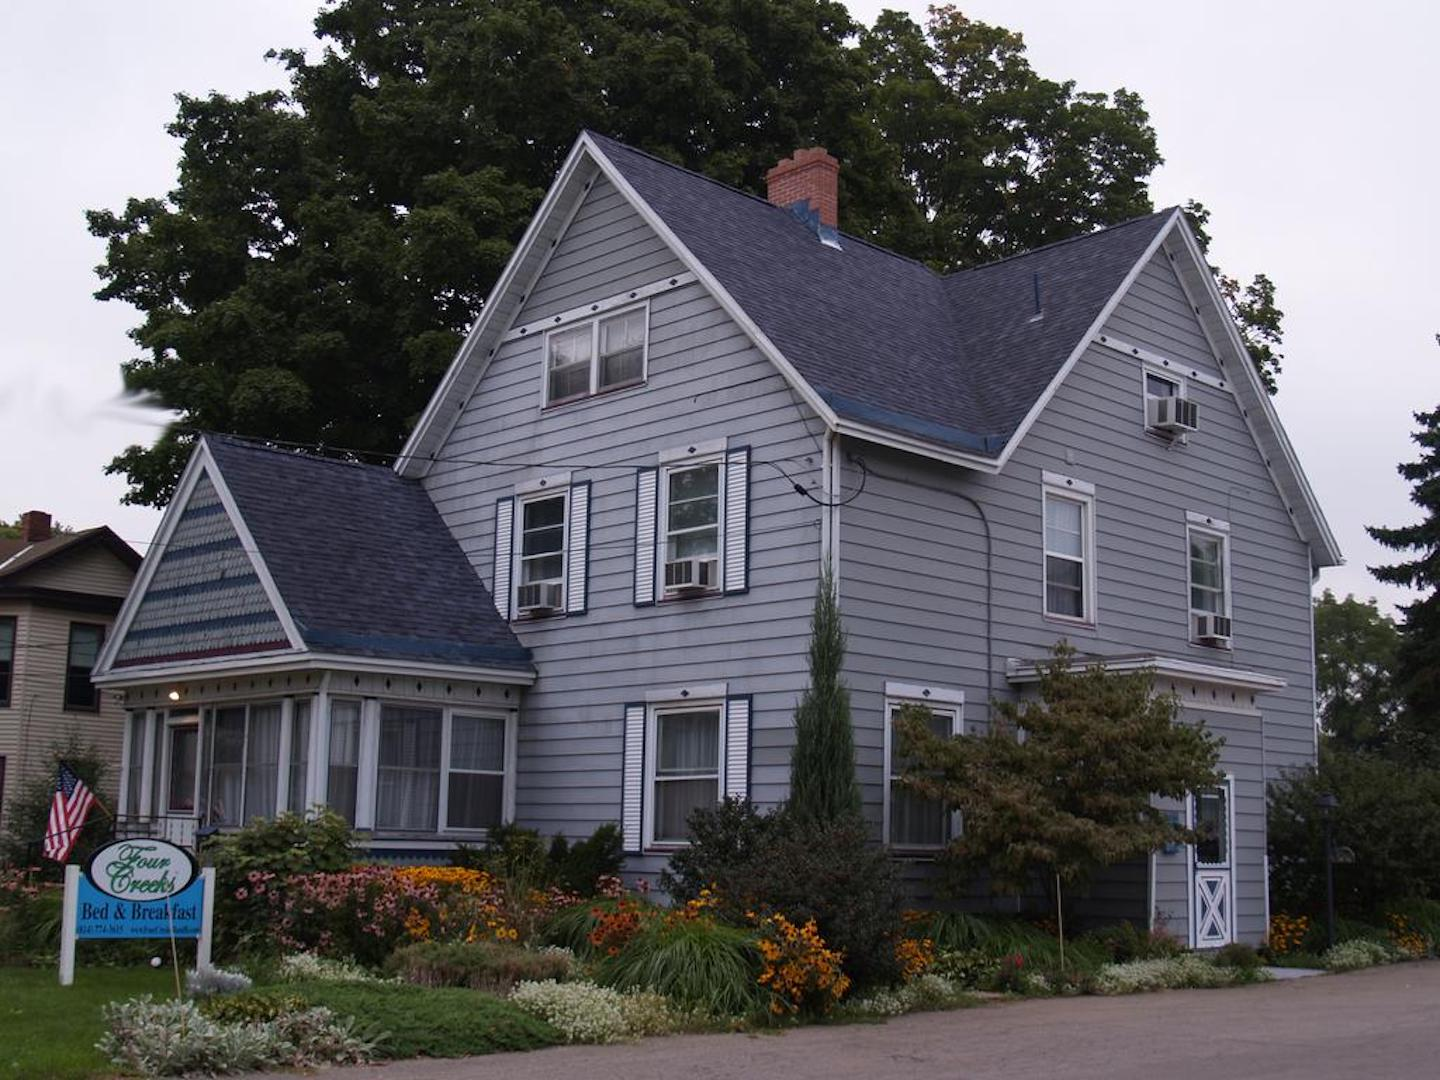 A house in front of a building at Four Creeks Bed & Breakfast.